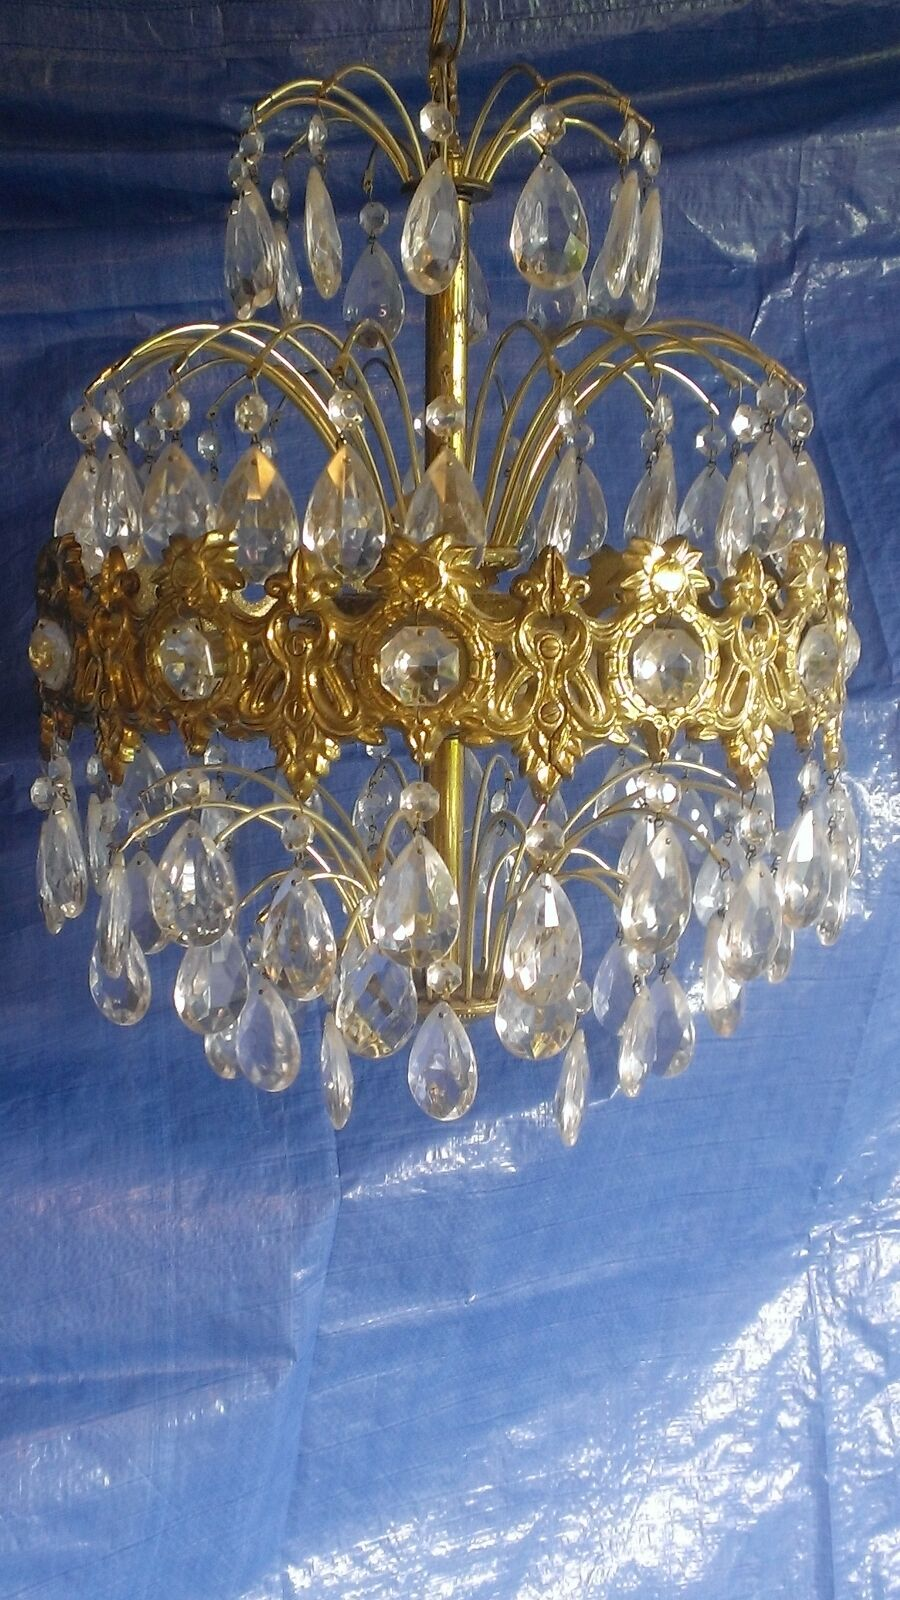 Vintage Chandelier Hollywood Regency / Neoclassical Style 6 Light w/ Crystals